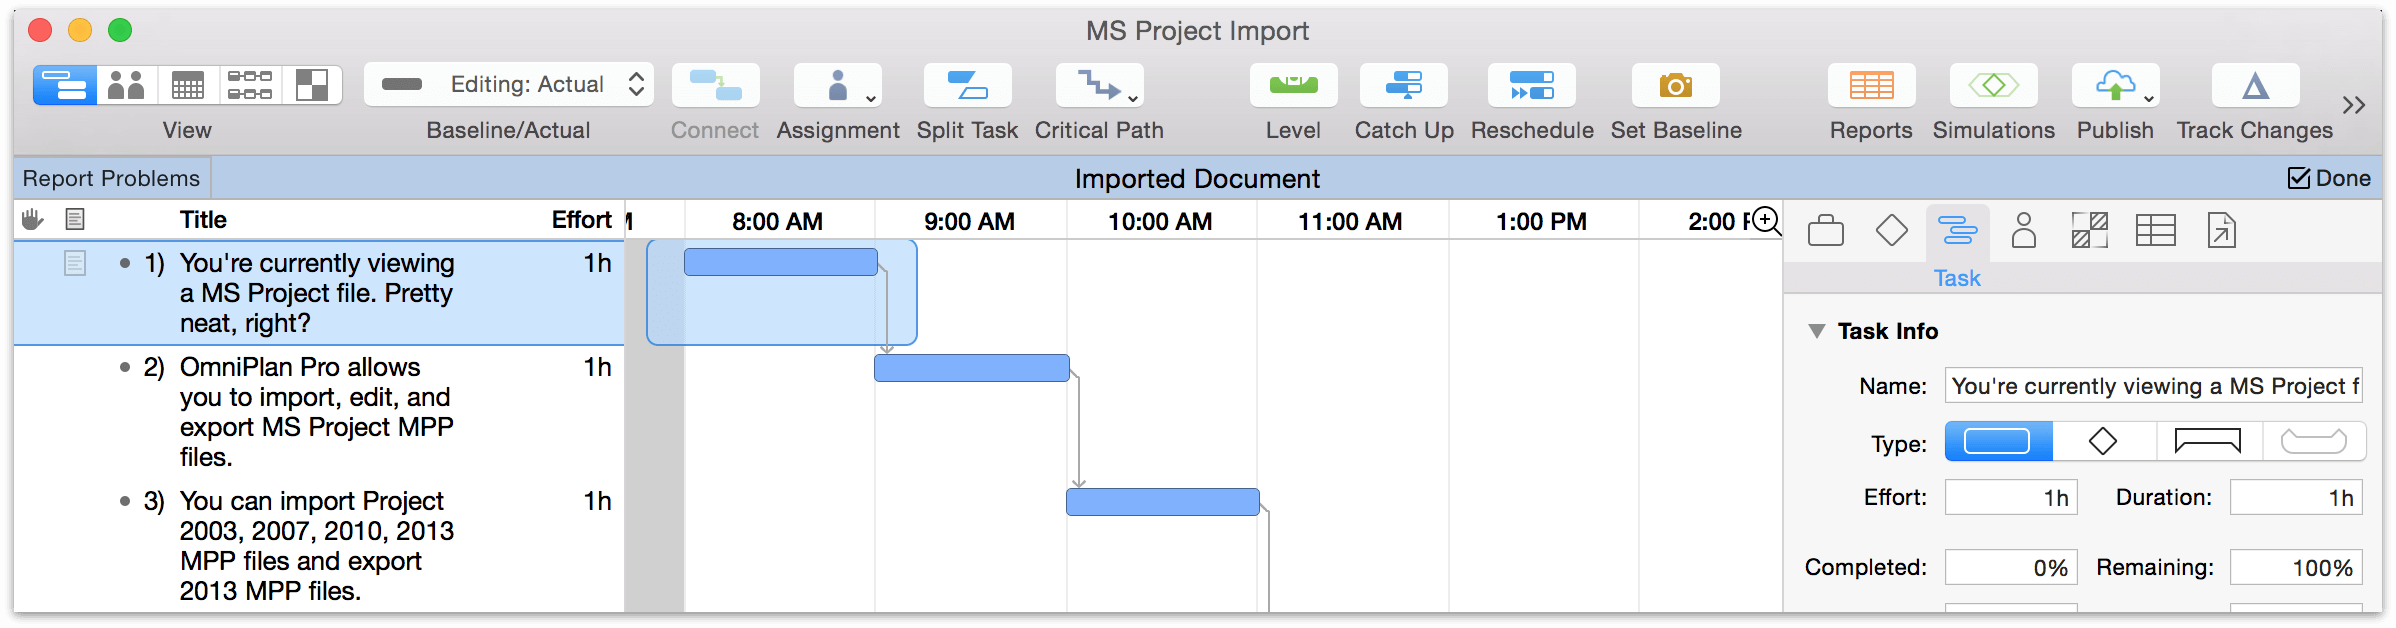 OmniPlan 3 for Mac User Manual - Importing and Exporting